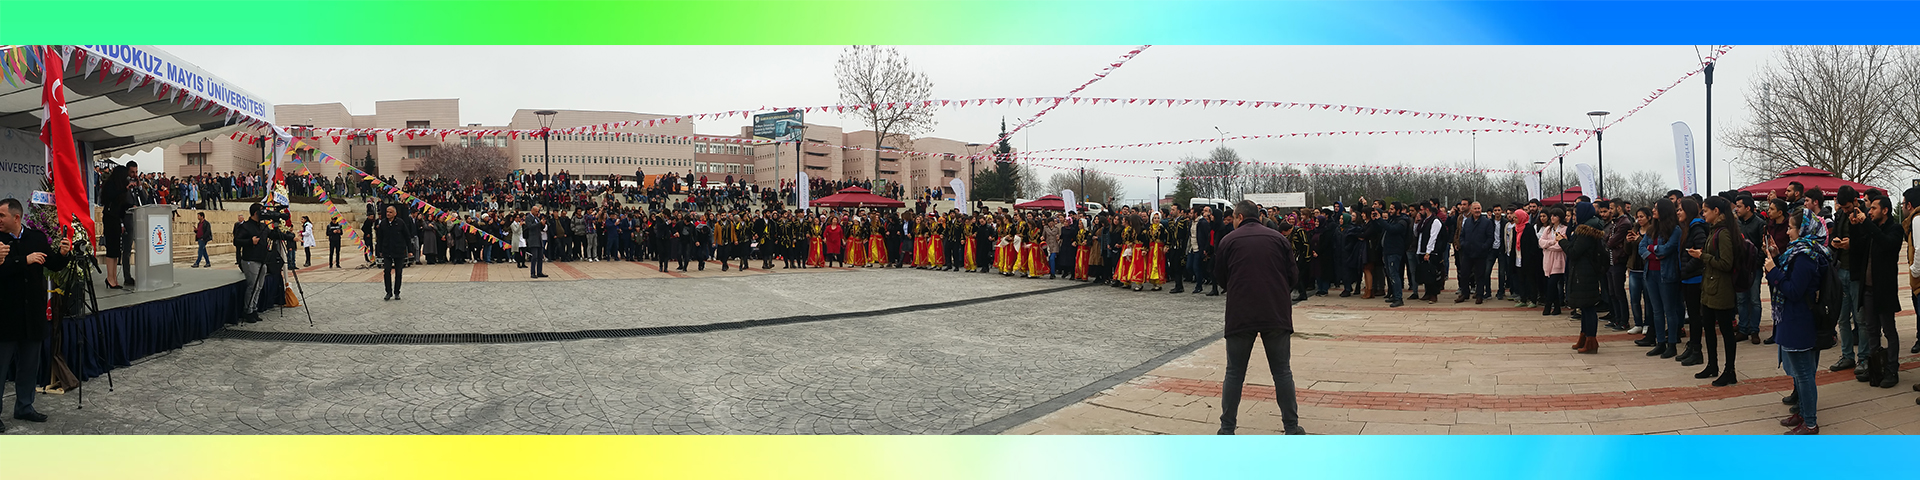 http://www.omu.edu.tr/sites/default/files/files/omu_family_enthusiastically_celebrated_newroz/nevruz-slider.jpg